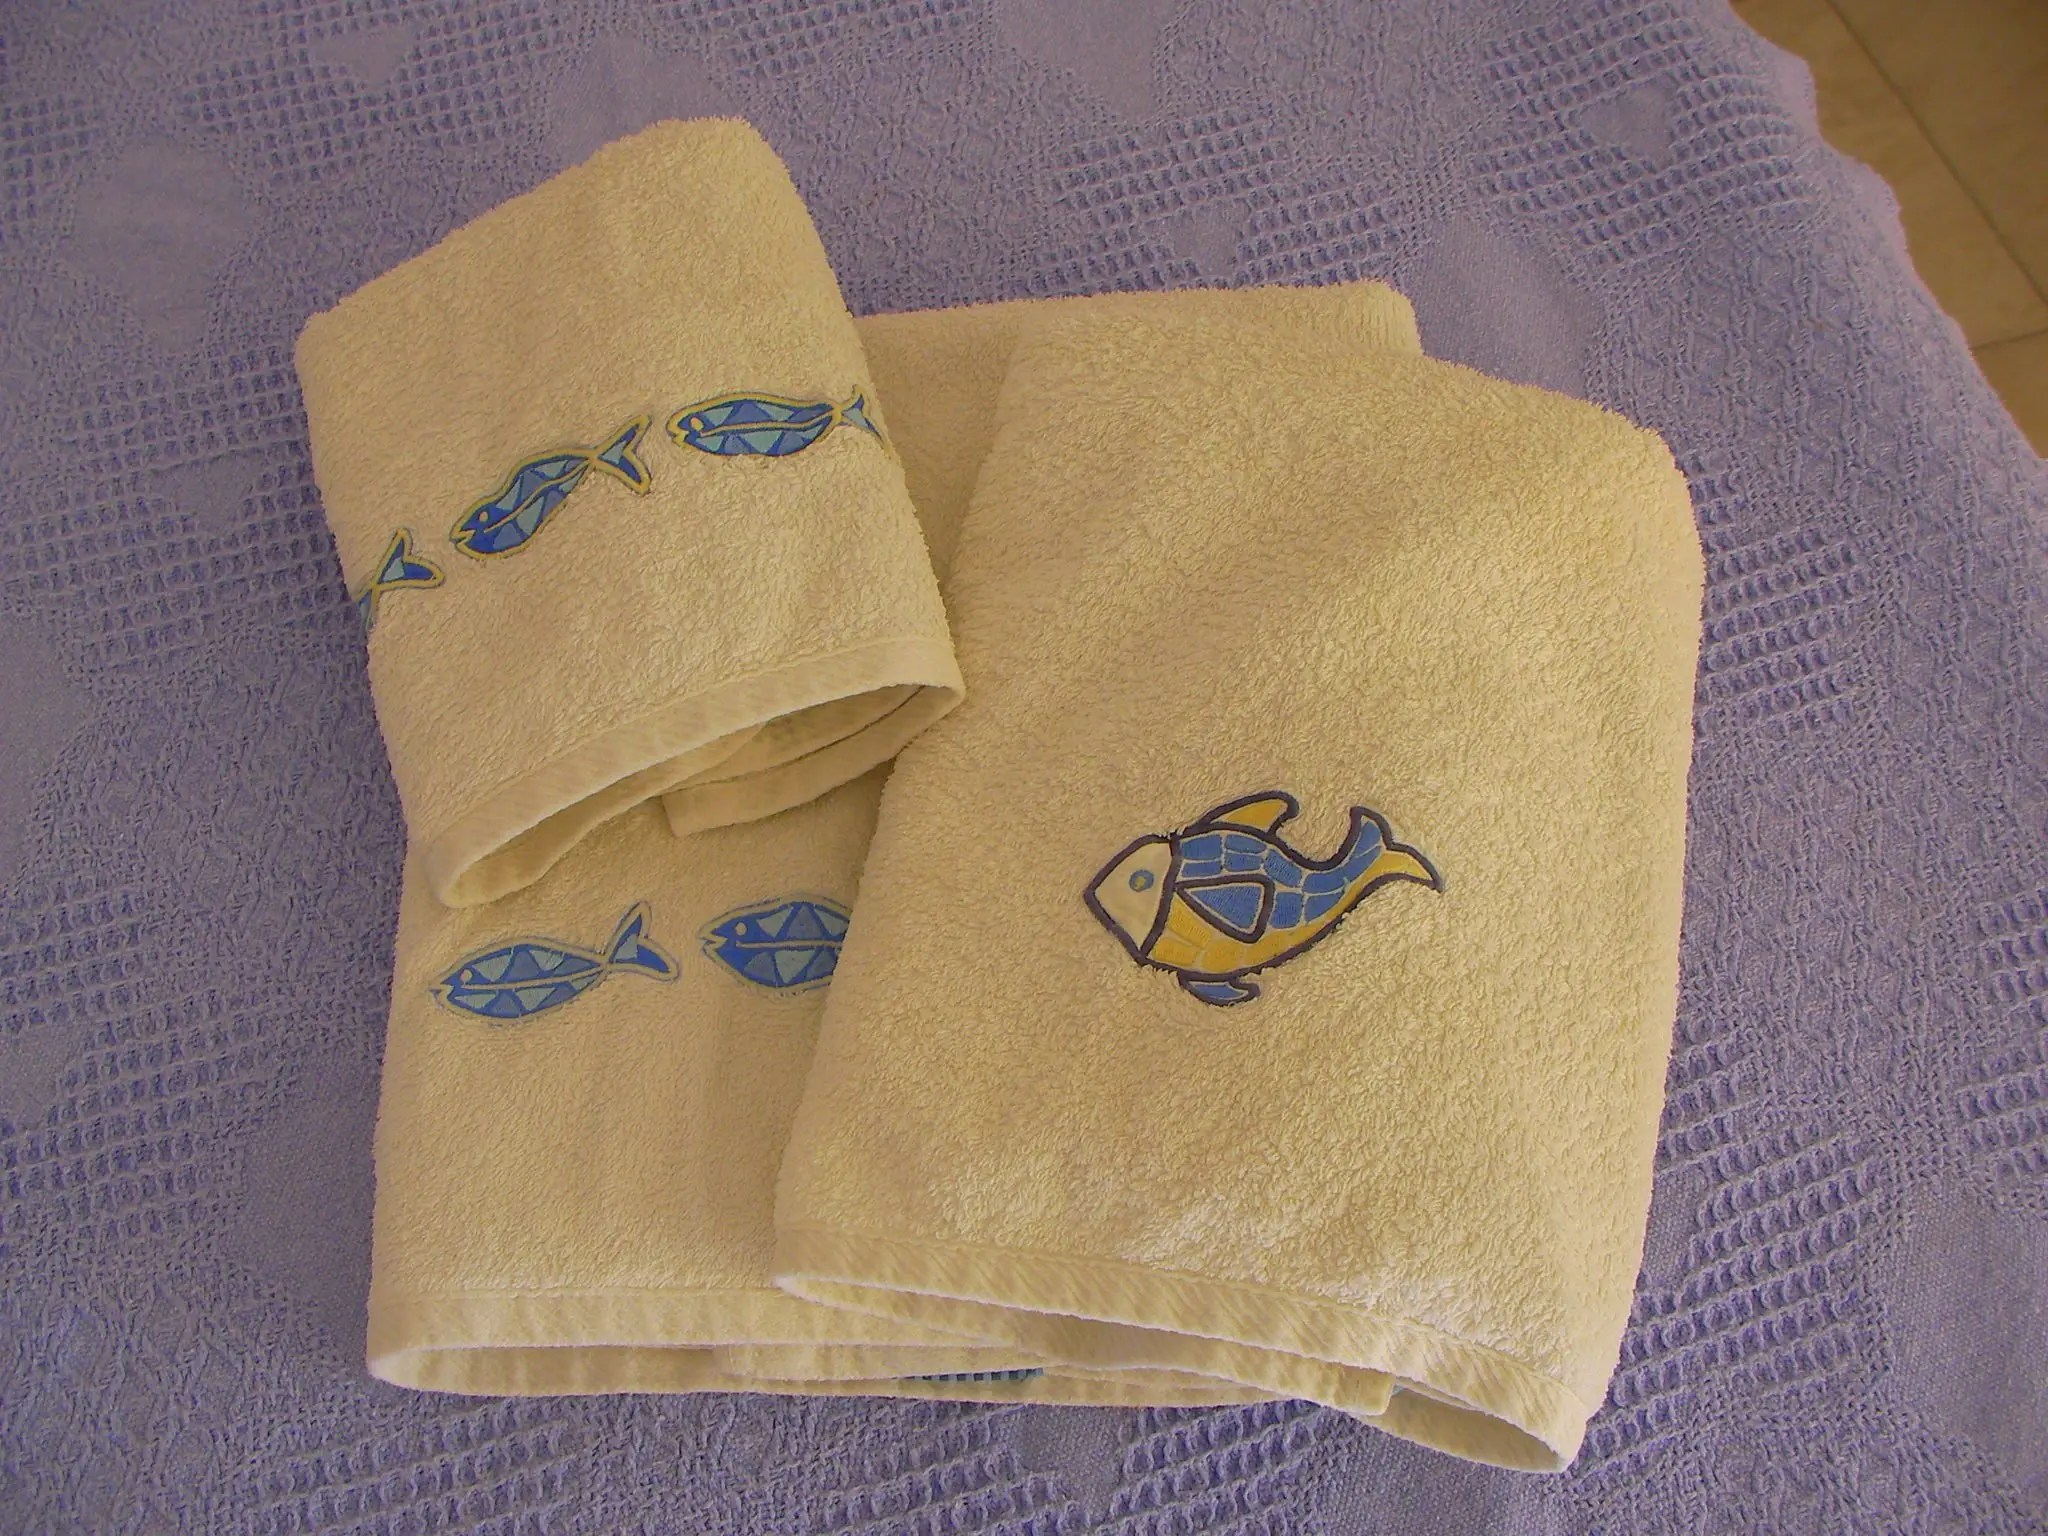 Towels and bedlinen are  provided